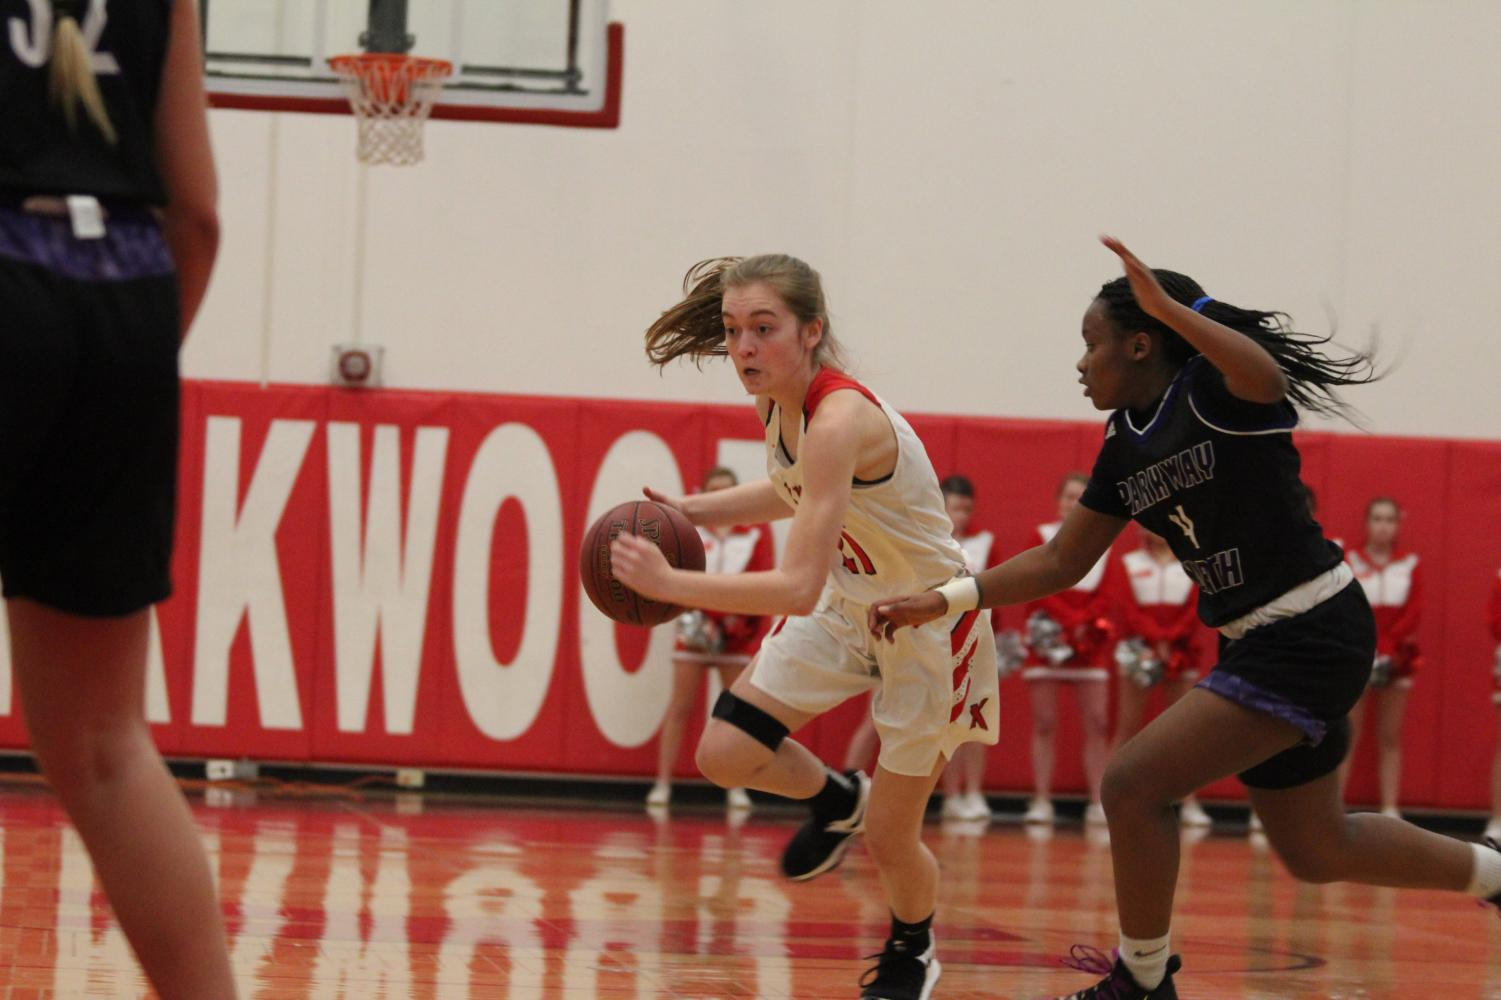 During+the+girls%E2%80%99+varsity+basketball+game%2C+Sarah+Musson%2C+sophomore%2C+drives+past+the+defender+Feb.+8.